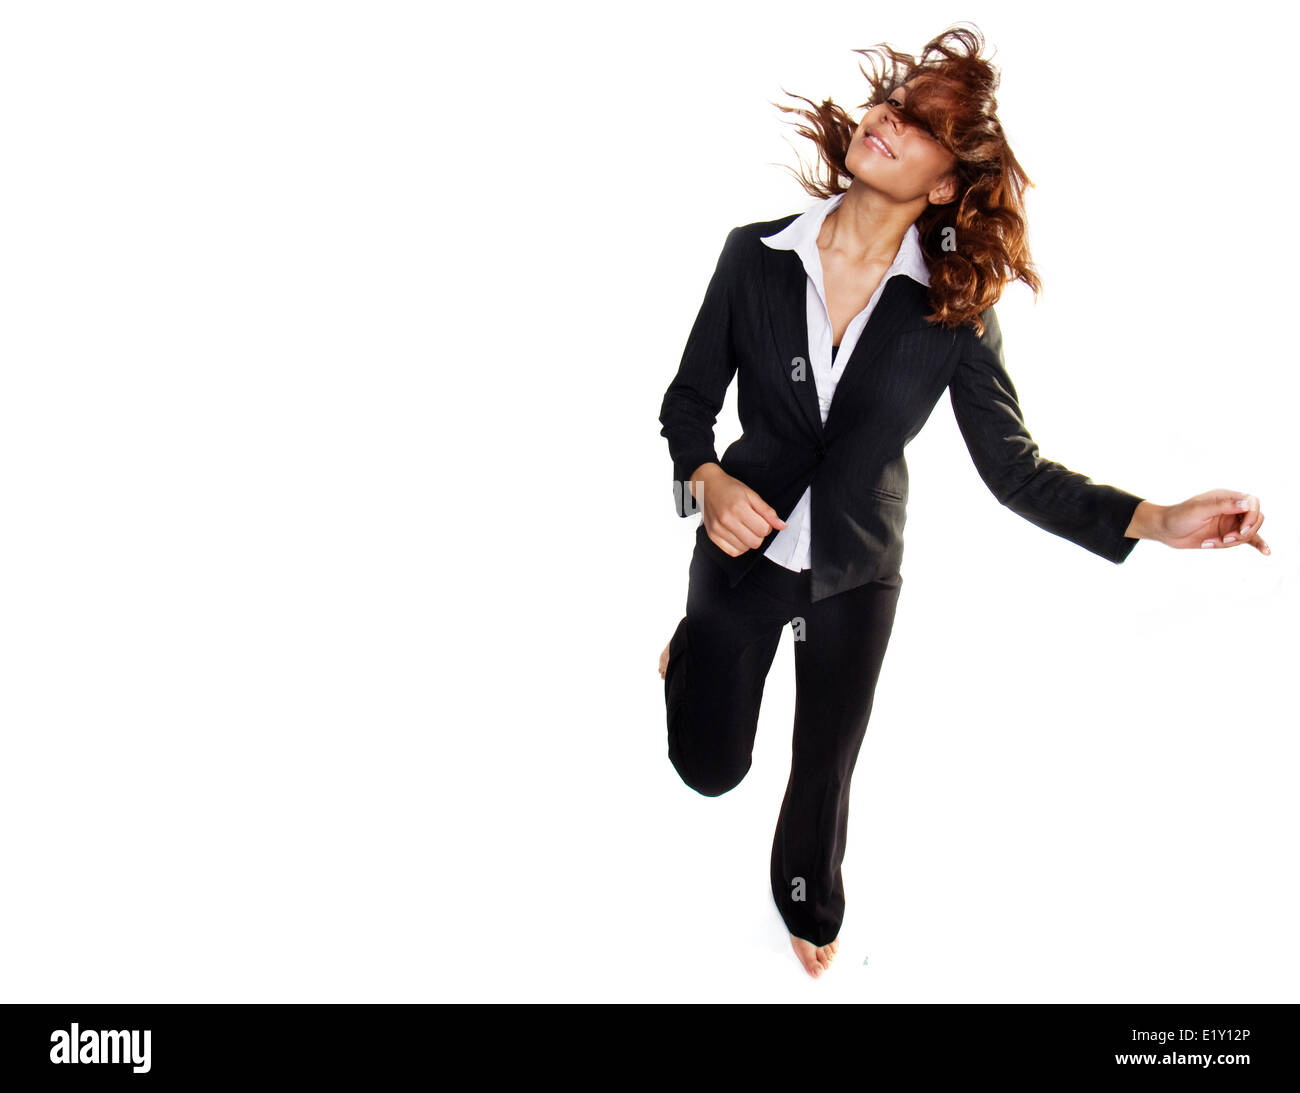 bussiness woman jumping - Stock Image